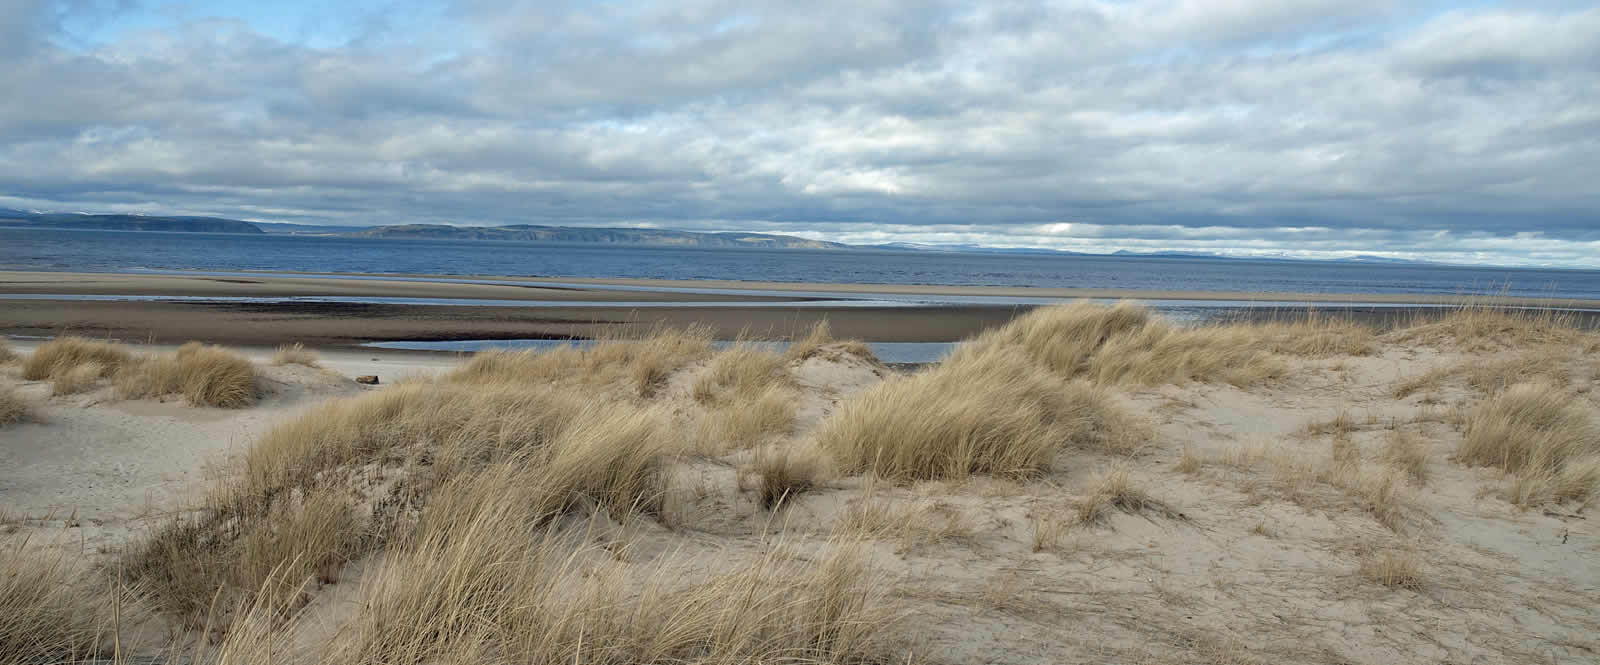 Guide to Nairn in Moray